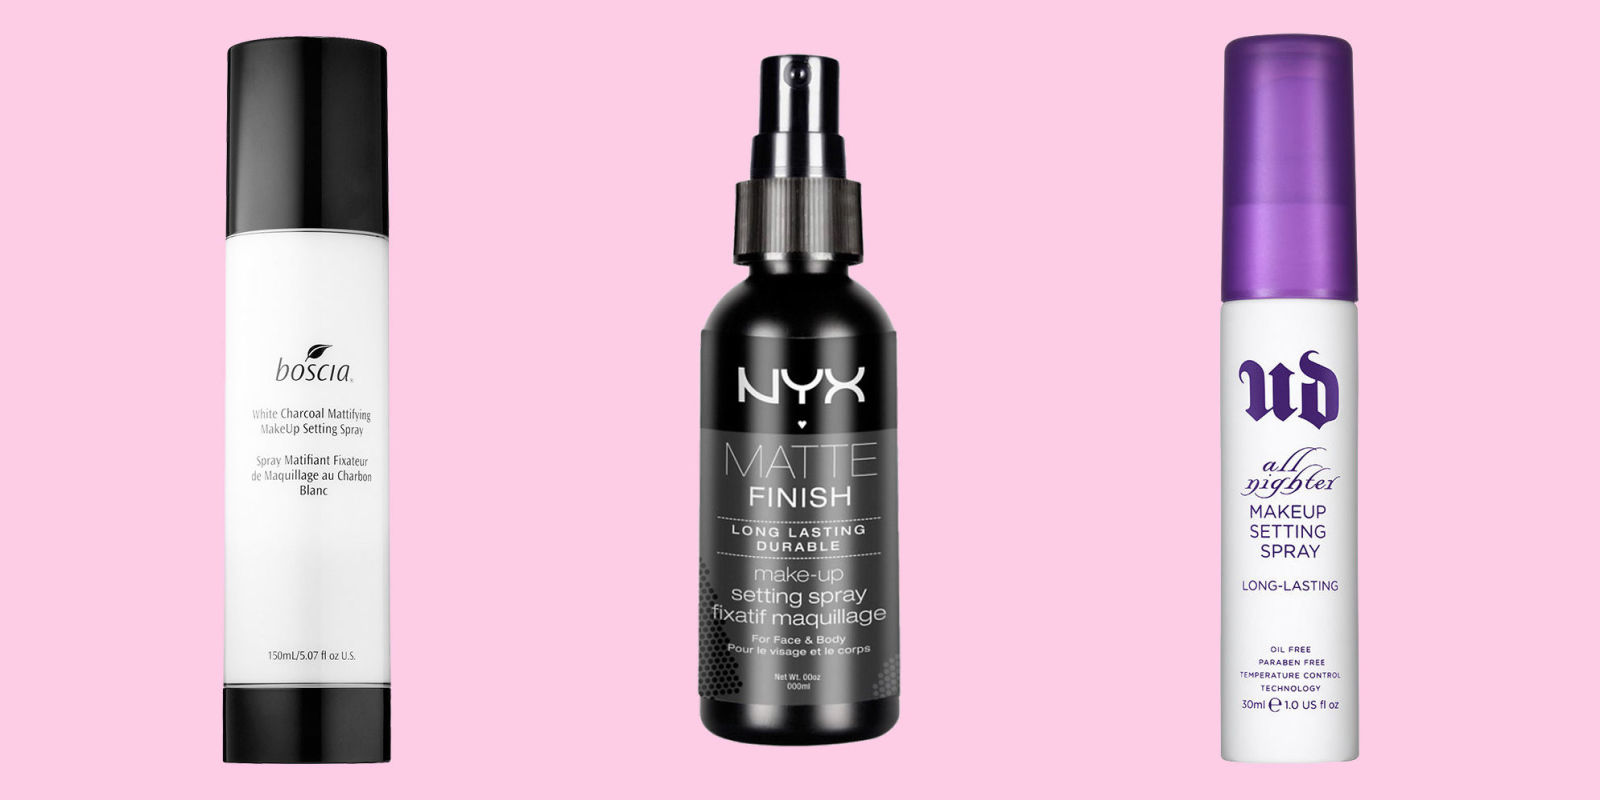 best makeup setting spray 9 best makeup settings sprays to make your look last all day 13270